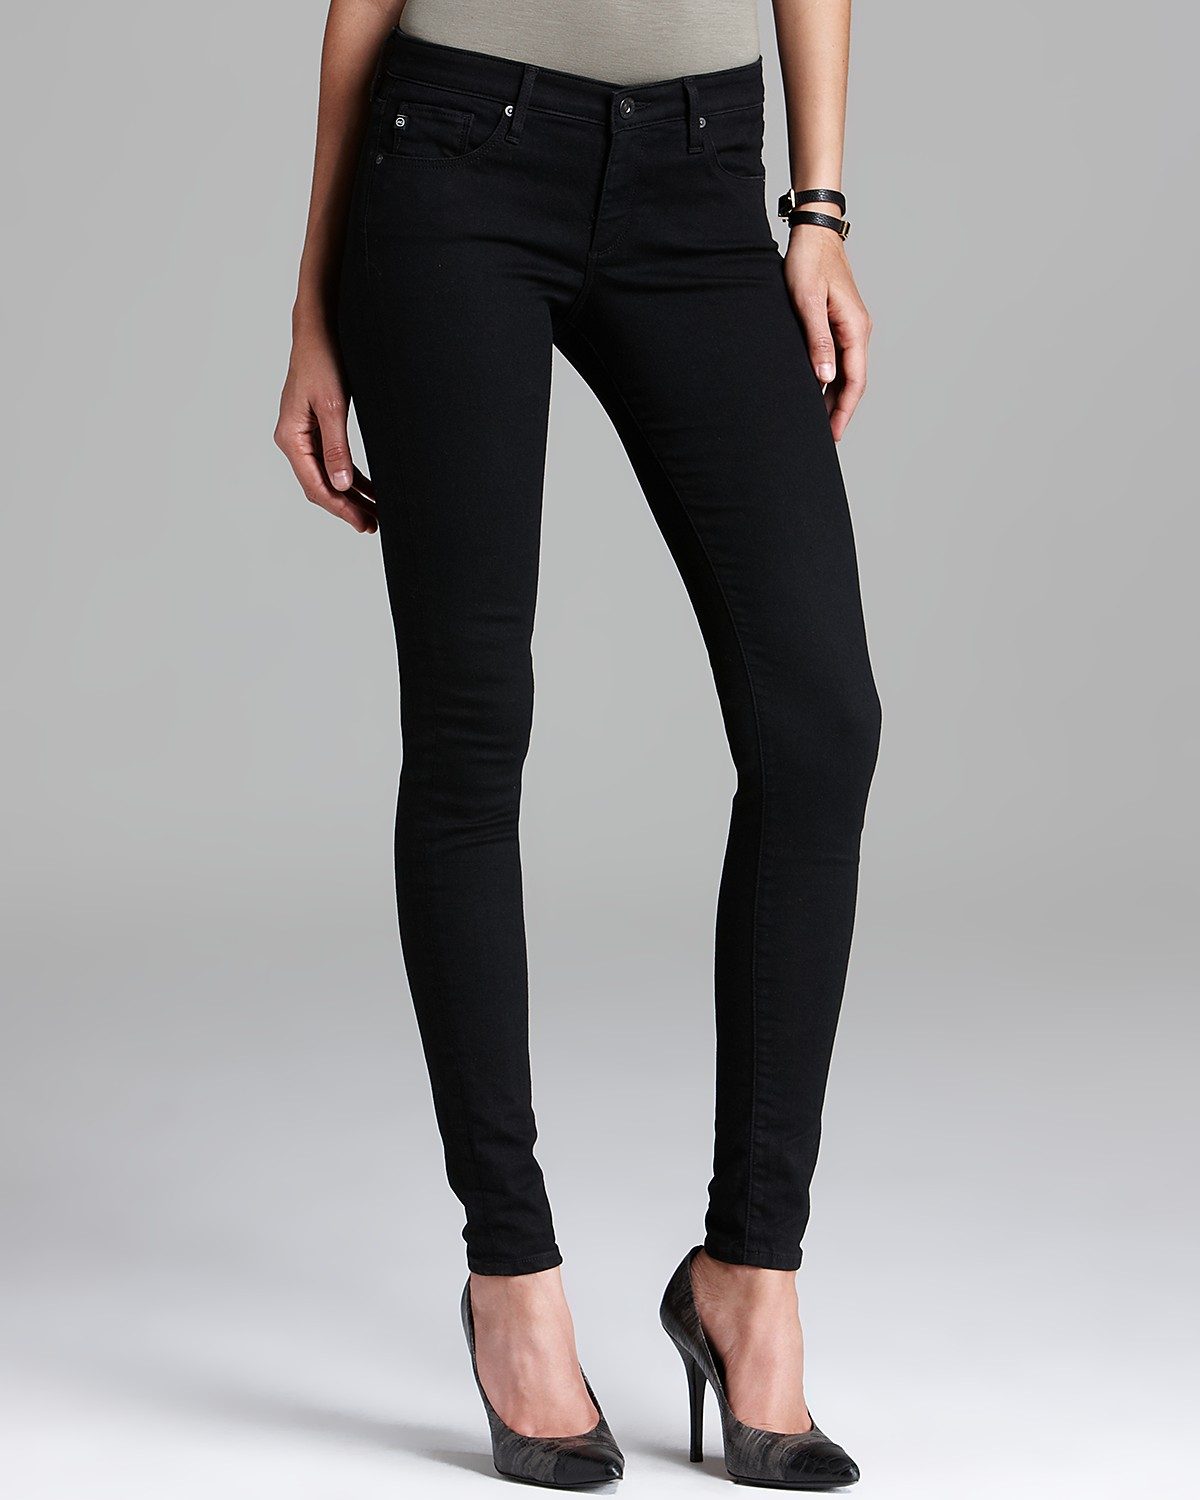 AG Adriano Goldschmied Jeans - The Absolute Legging in Raven | Bloomingdale's